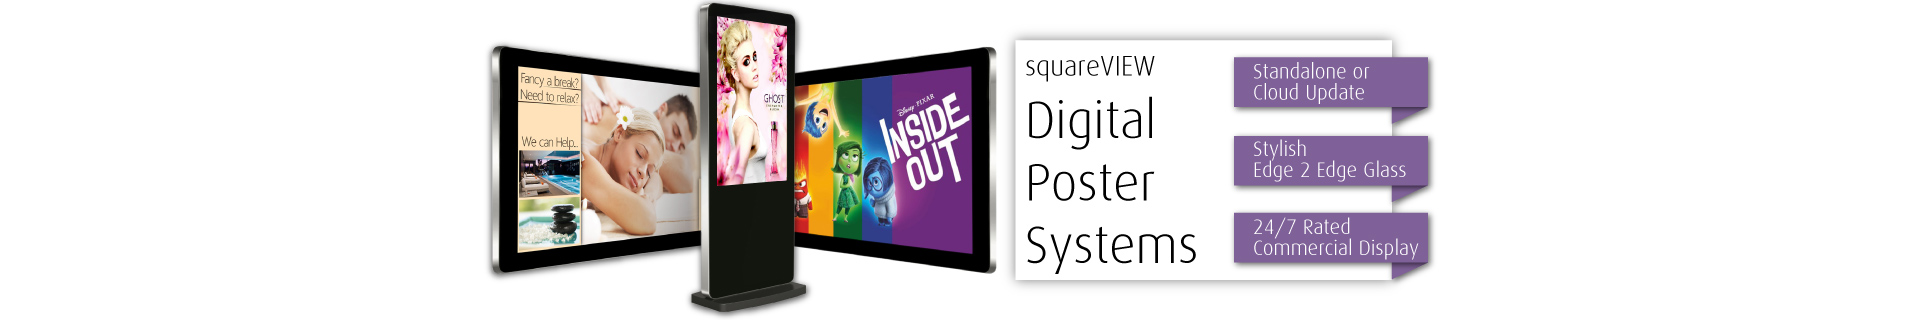 Digital Posters and Digital Display Screens USB